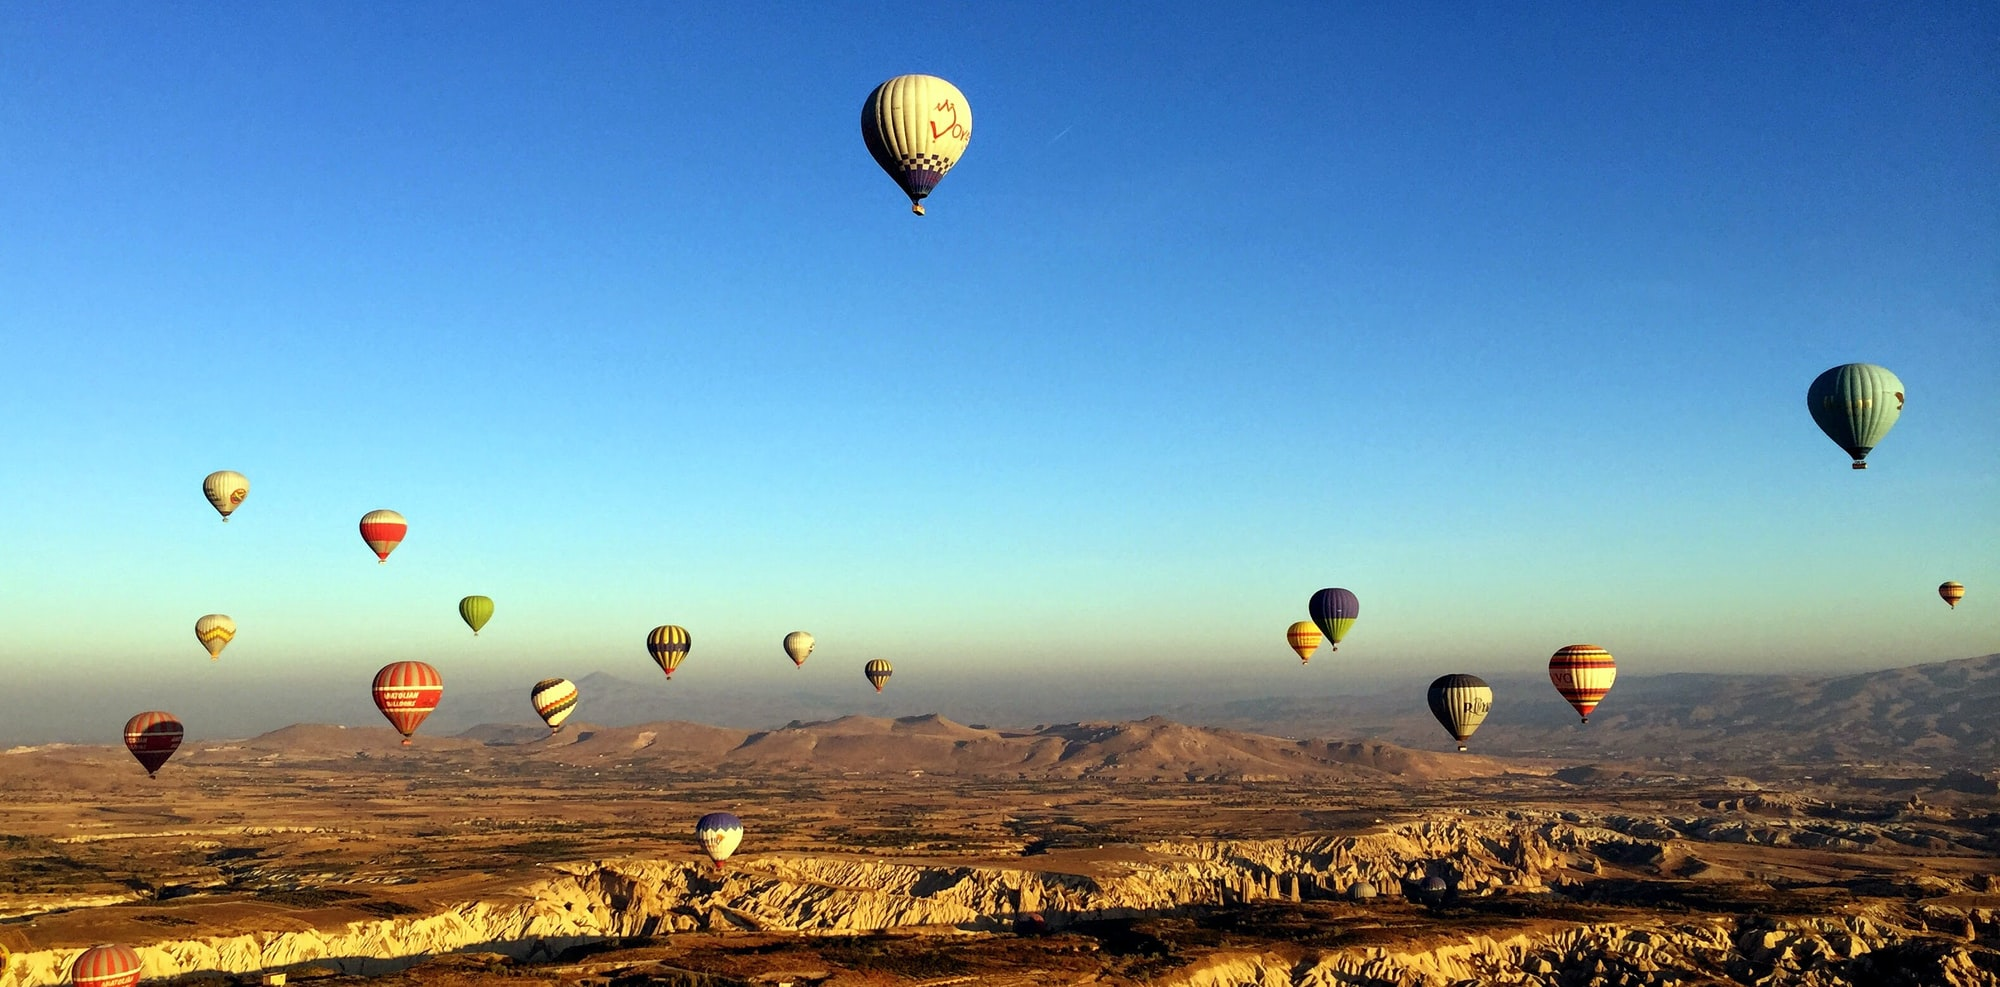 Hot air ballooning in the national park of Cappadocia. Every morning a hundred or more balloons lift off at sunrise, sailing over the remarkable landscapes of central Turkey.